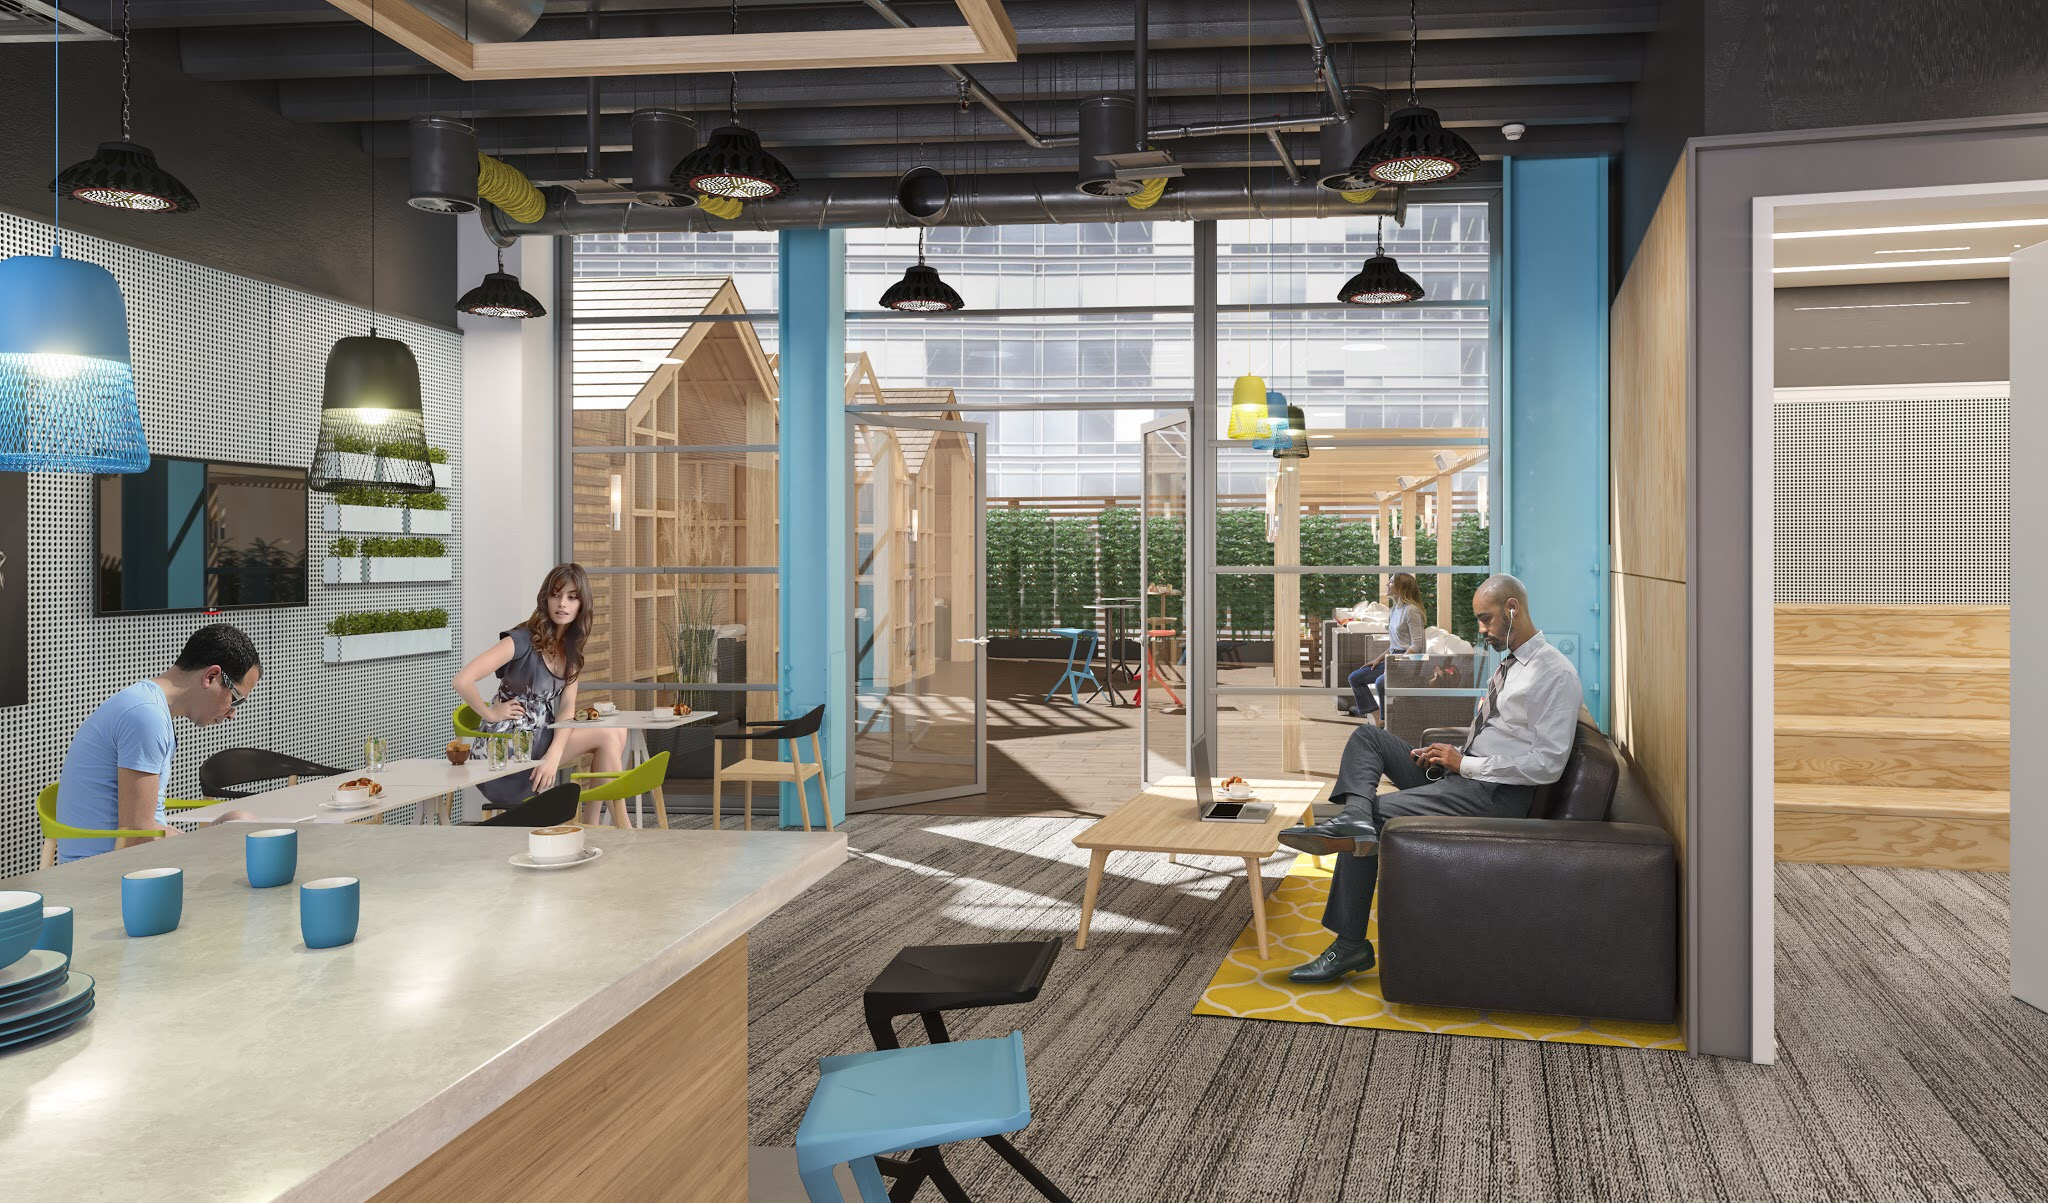 ... Exciting And Progressive Hubs For Media, Tech And Digital Businesses In  The Country, MediaCityUK Is Set To Launch Arrive, Its New Creative Office  Space ...